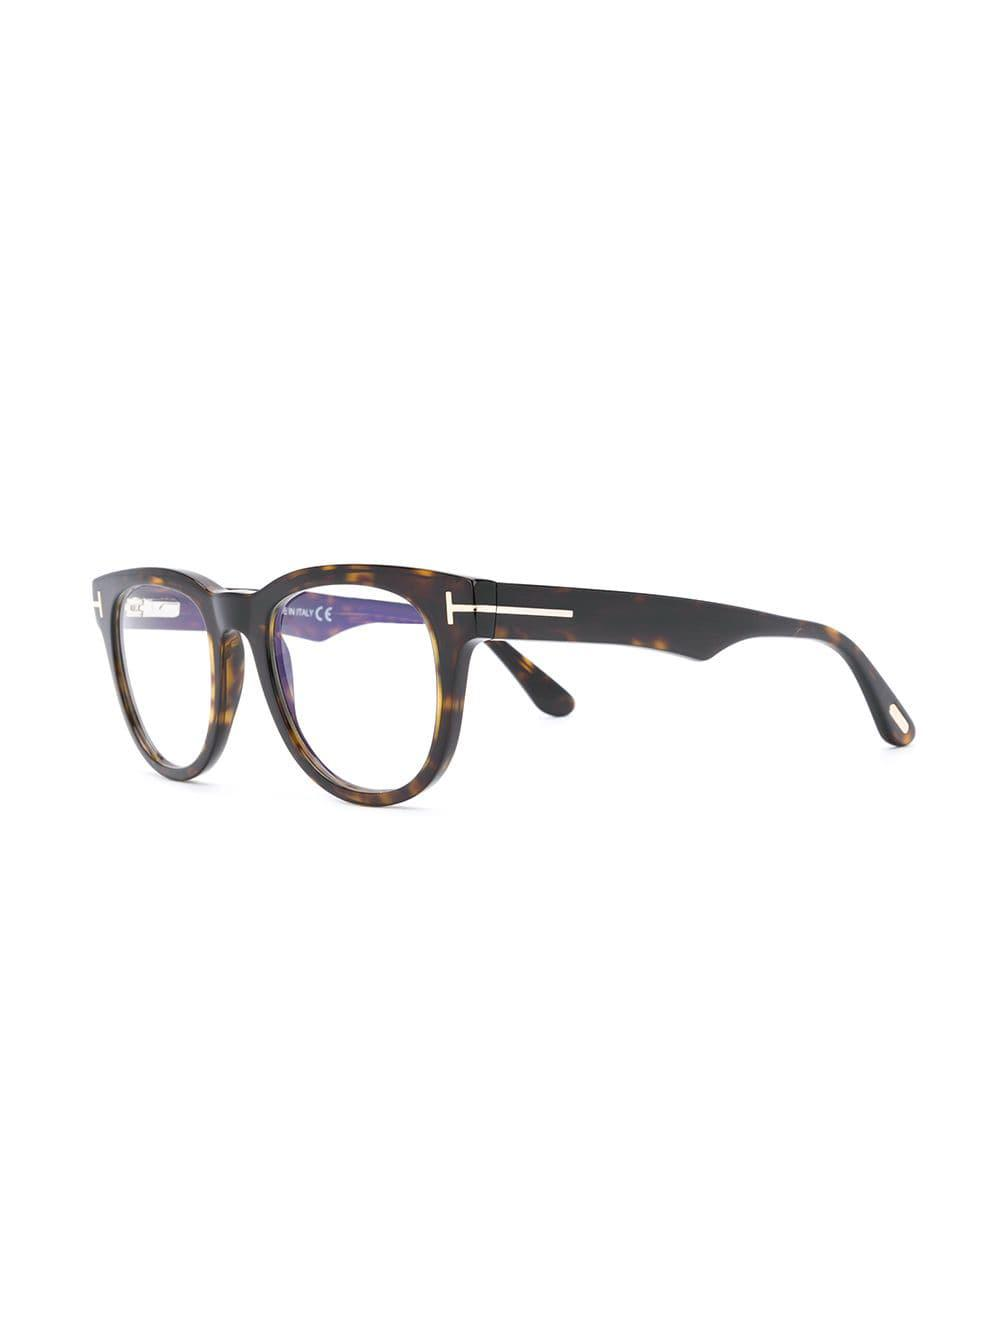 9a8dcfa637a Tom Ford Square Acetate Glasses in Brown - Save 1.5151515151515156 ...